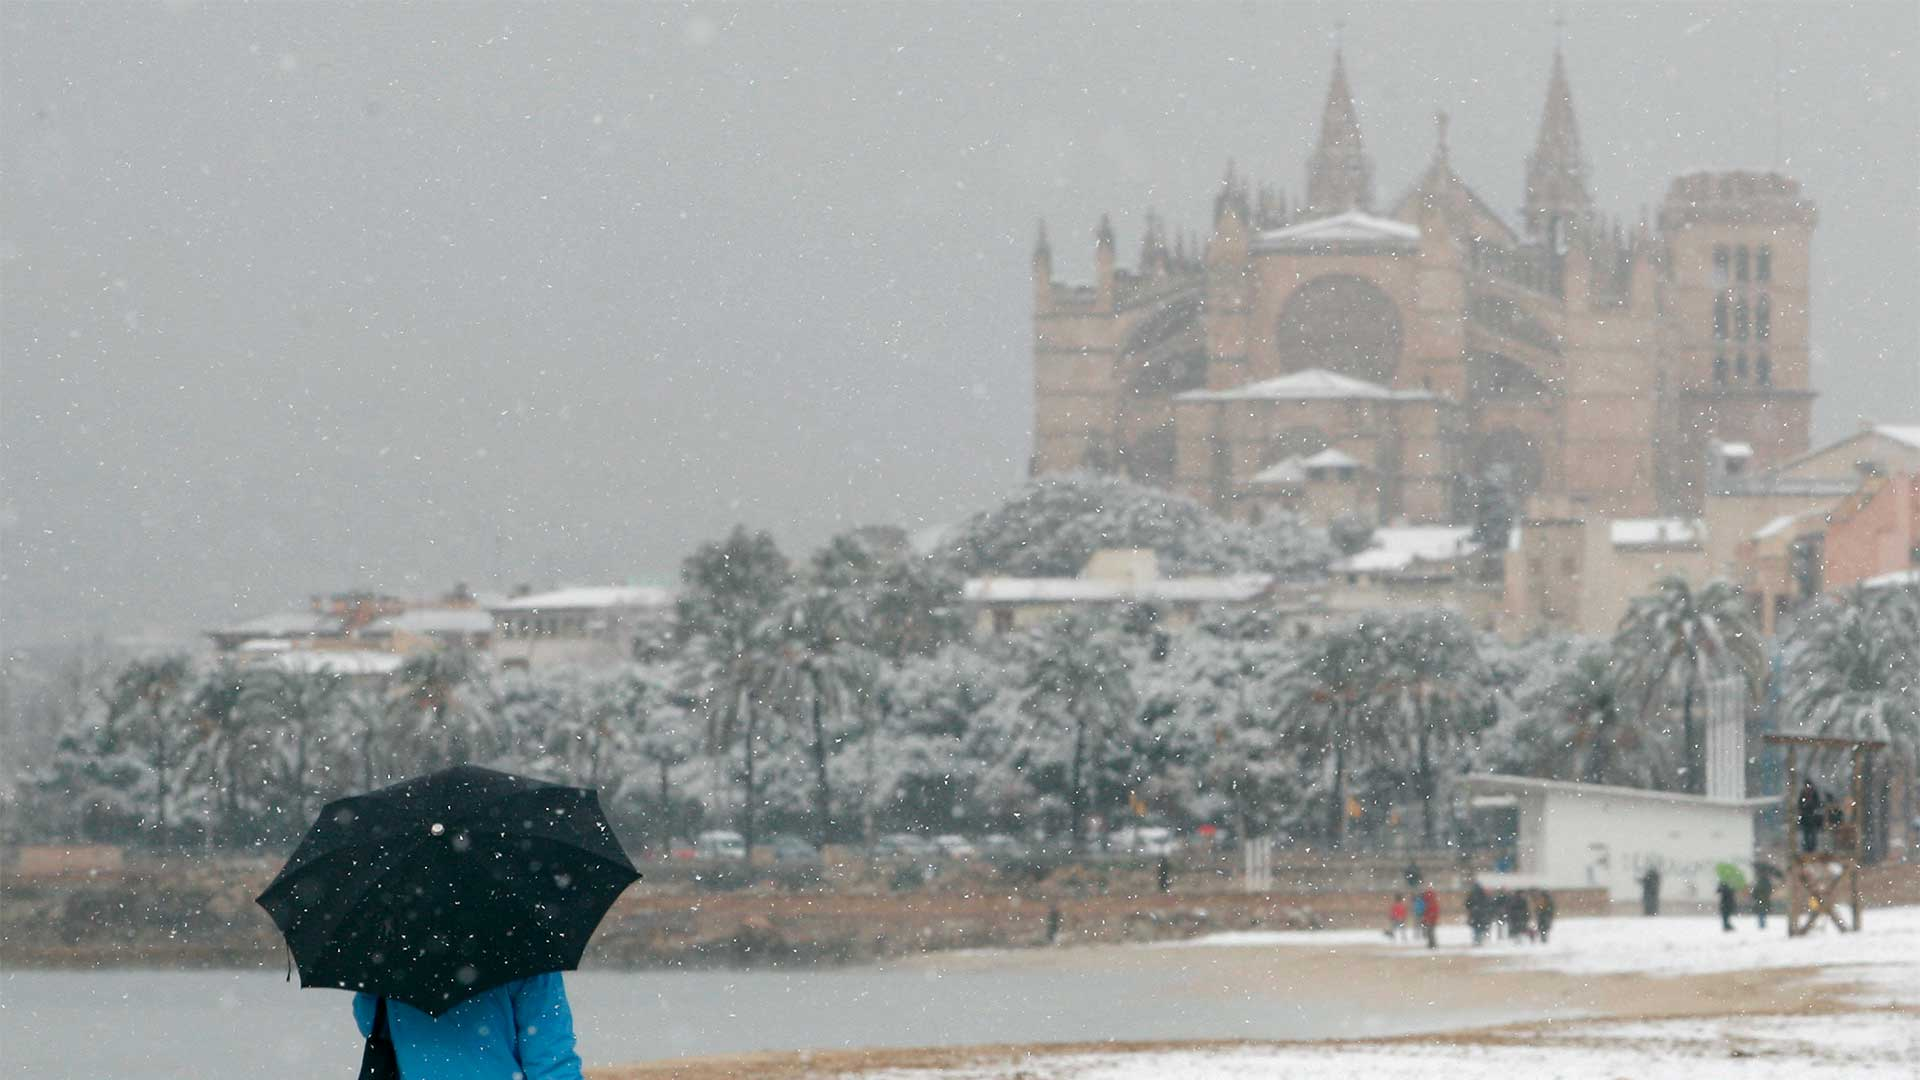 MALLORCA CAN BE A FREEZING PLACE